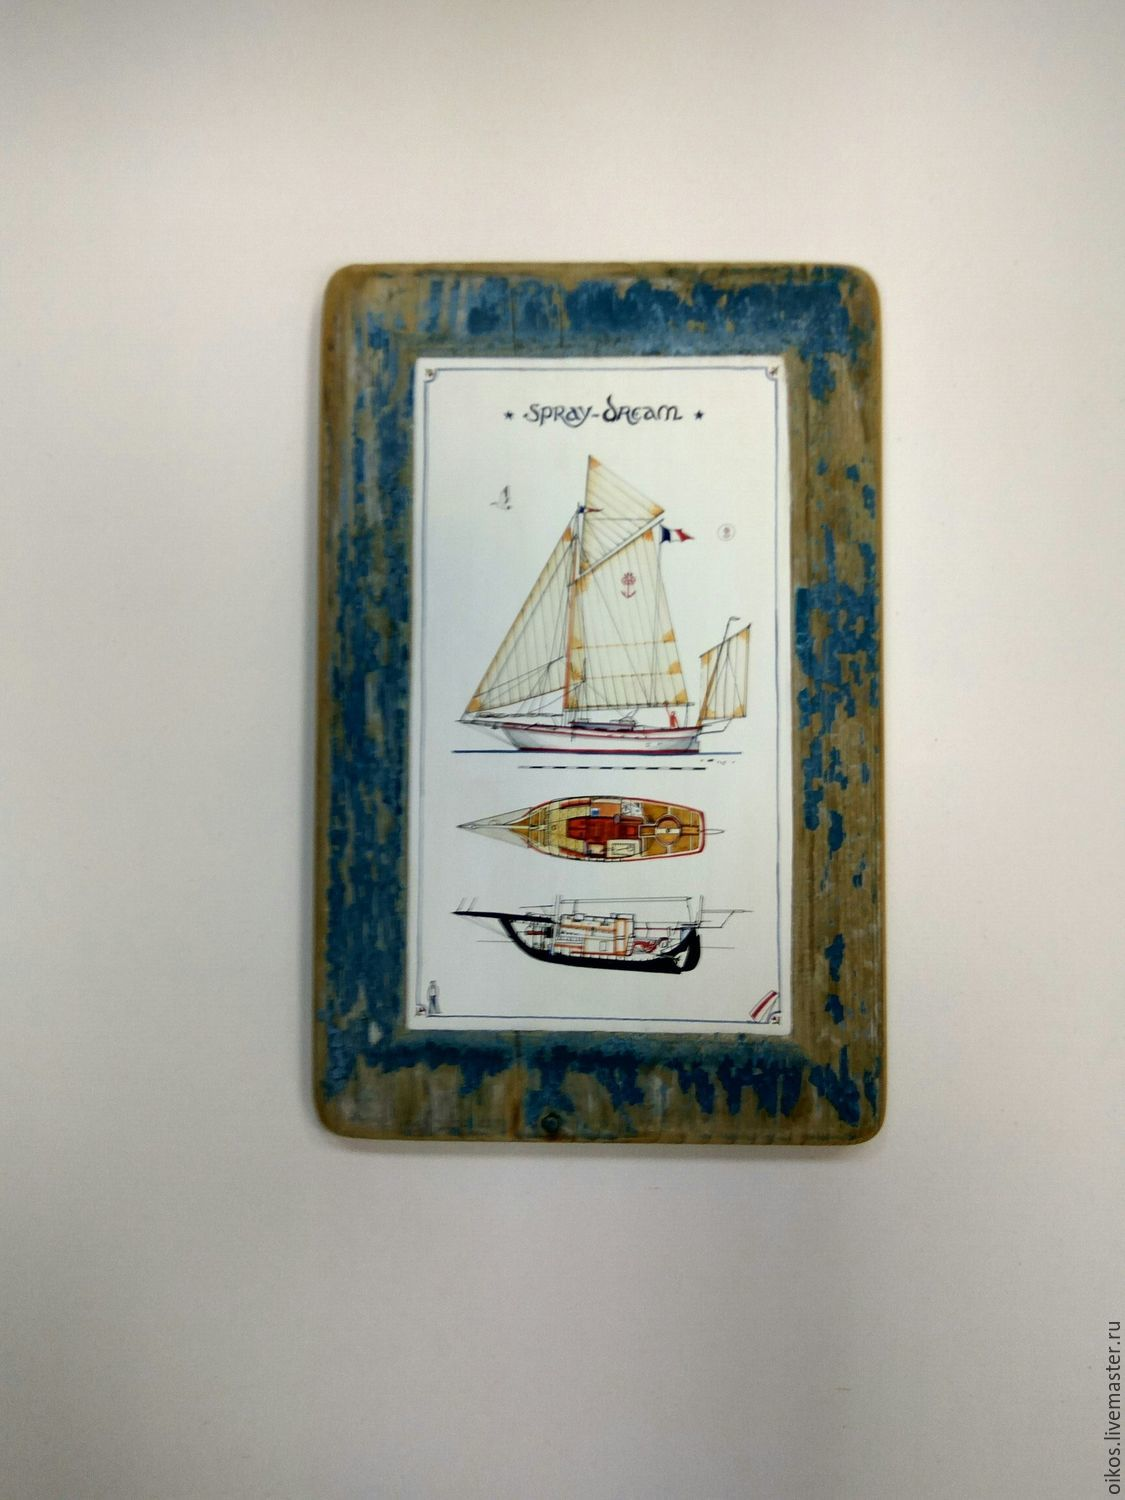 Painting a mural with the boat on the old Board gift for man General sailor, Pictures, St. Petersburg,  Фото №1